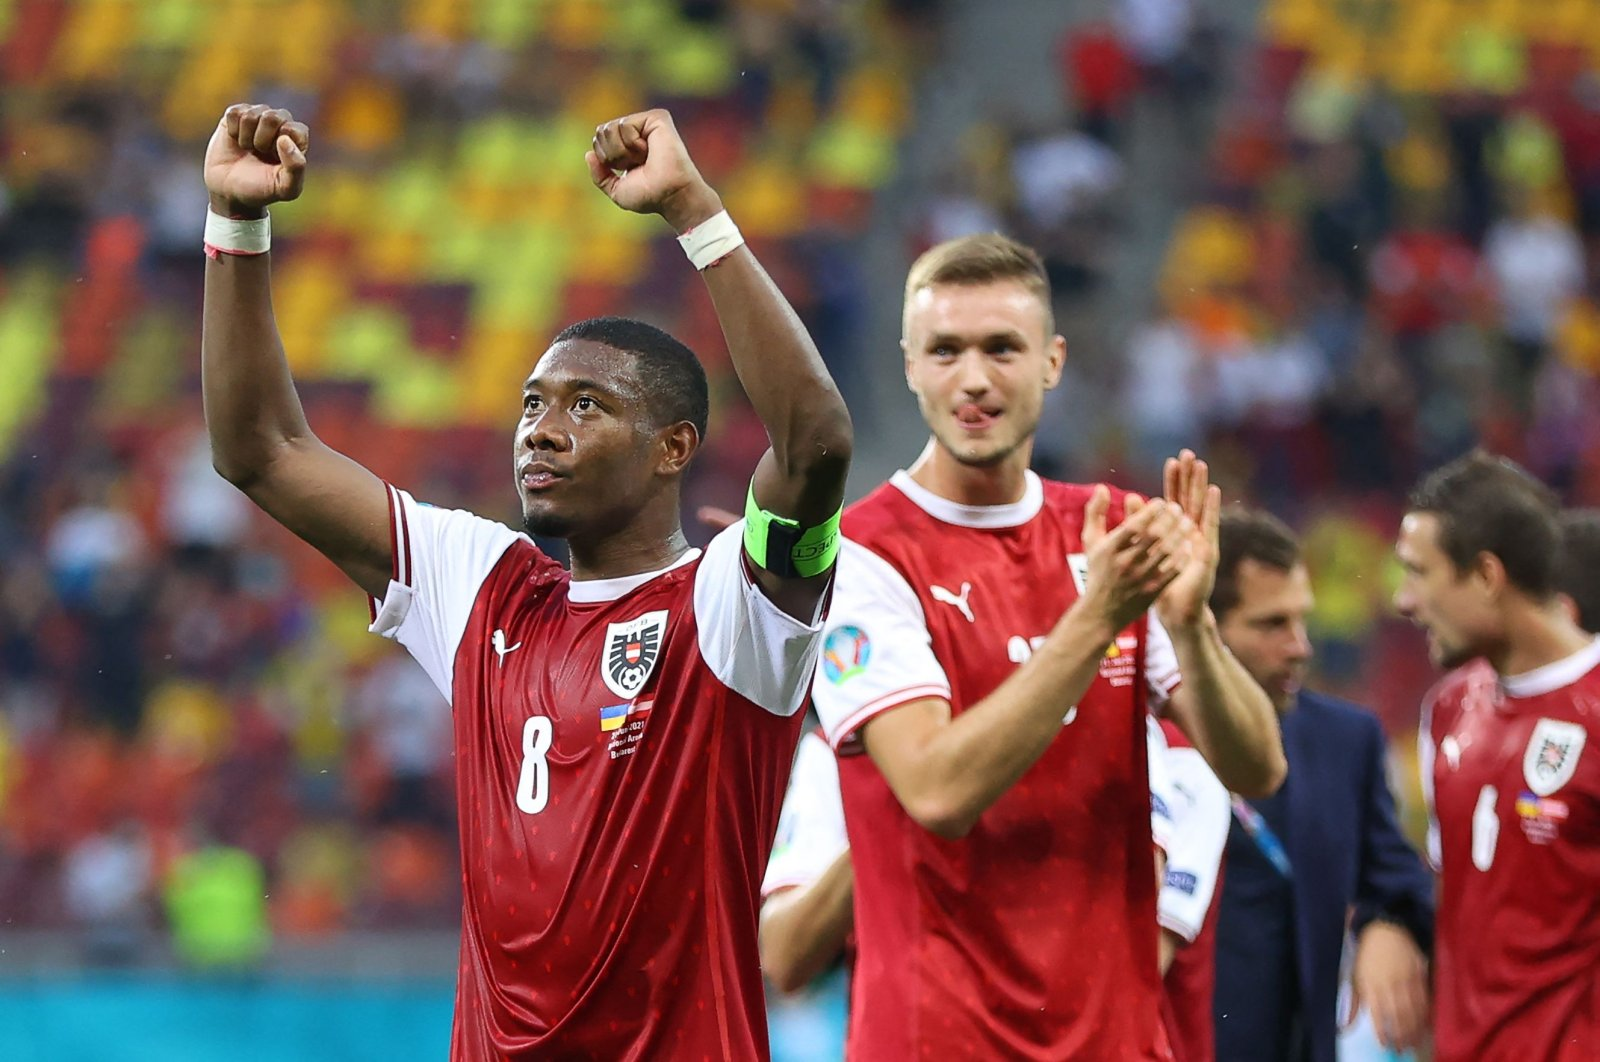 Austria's defender David Alaba (L) celebrates after winning the UEFA EURO 2020 Group C football match between Ukraine and Austria at the National Arena in Bucharest, Romania, June 21, 2021. (AFP Photo)